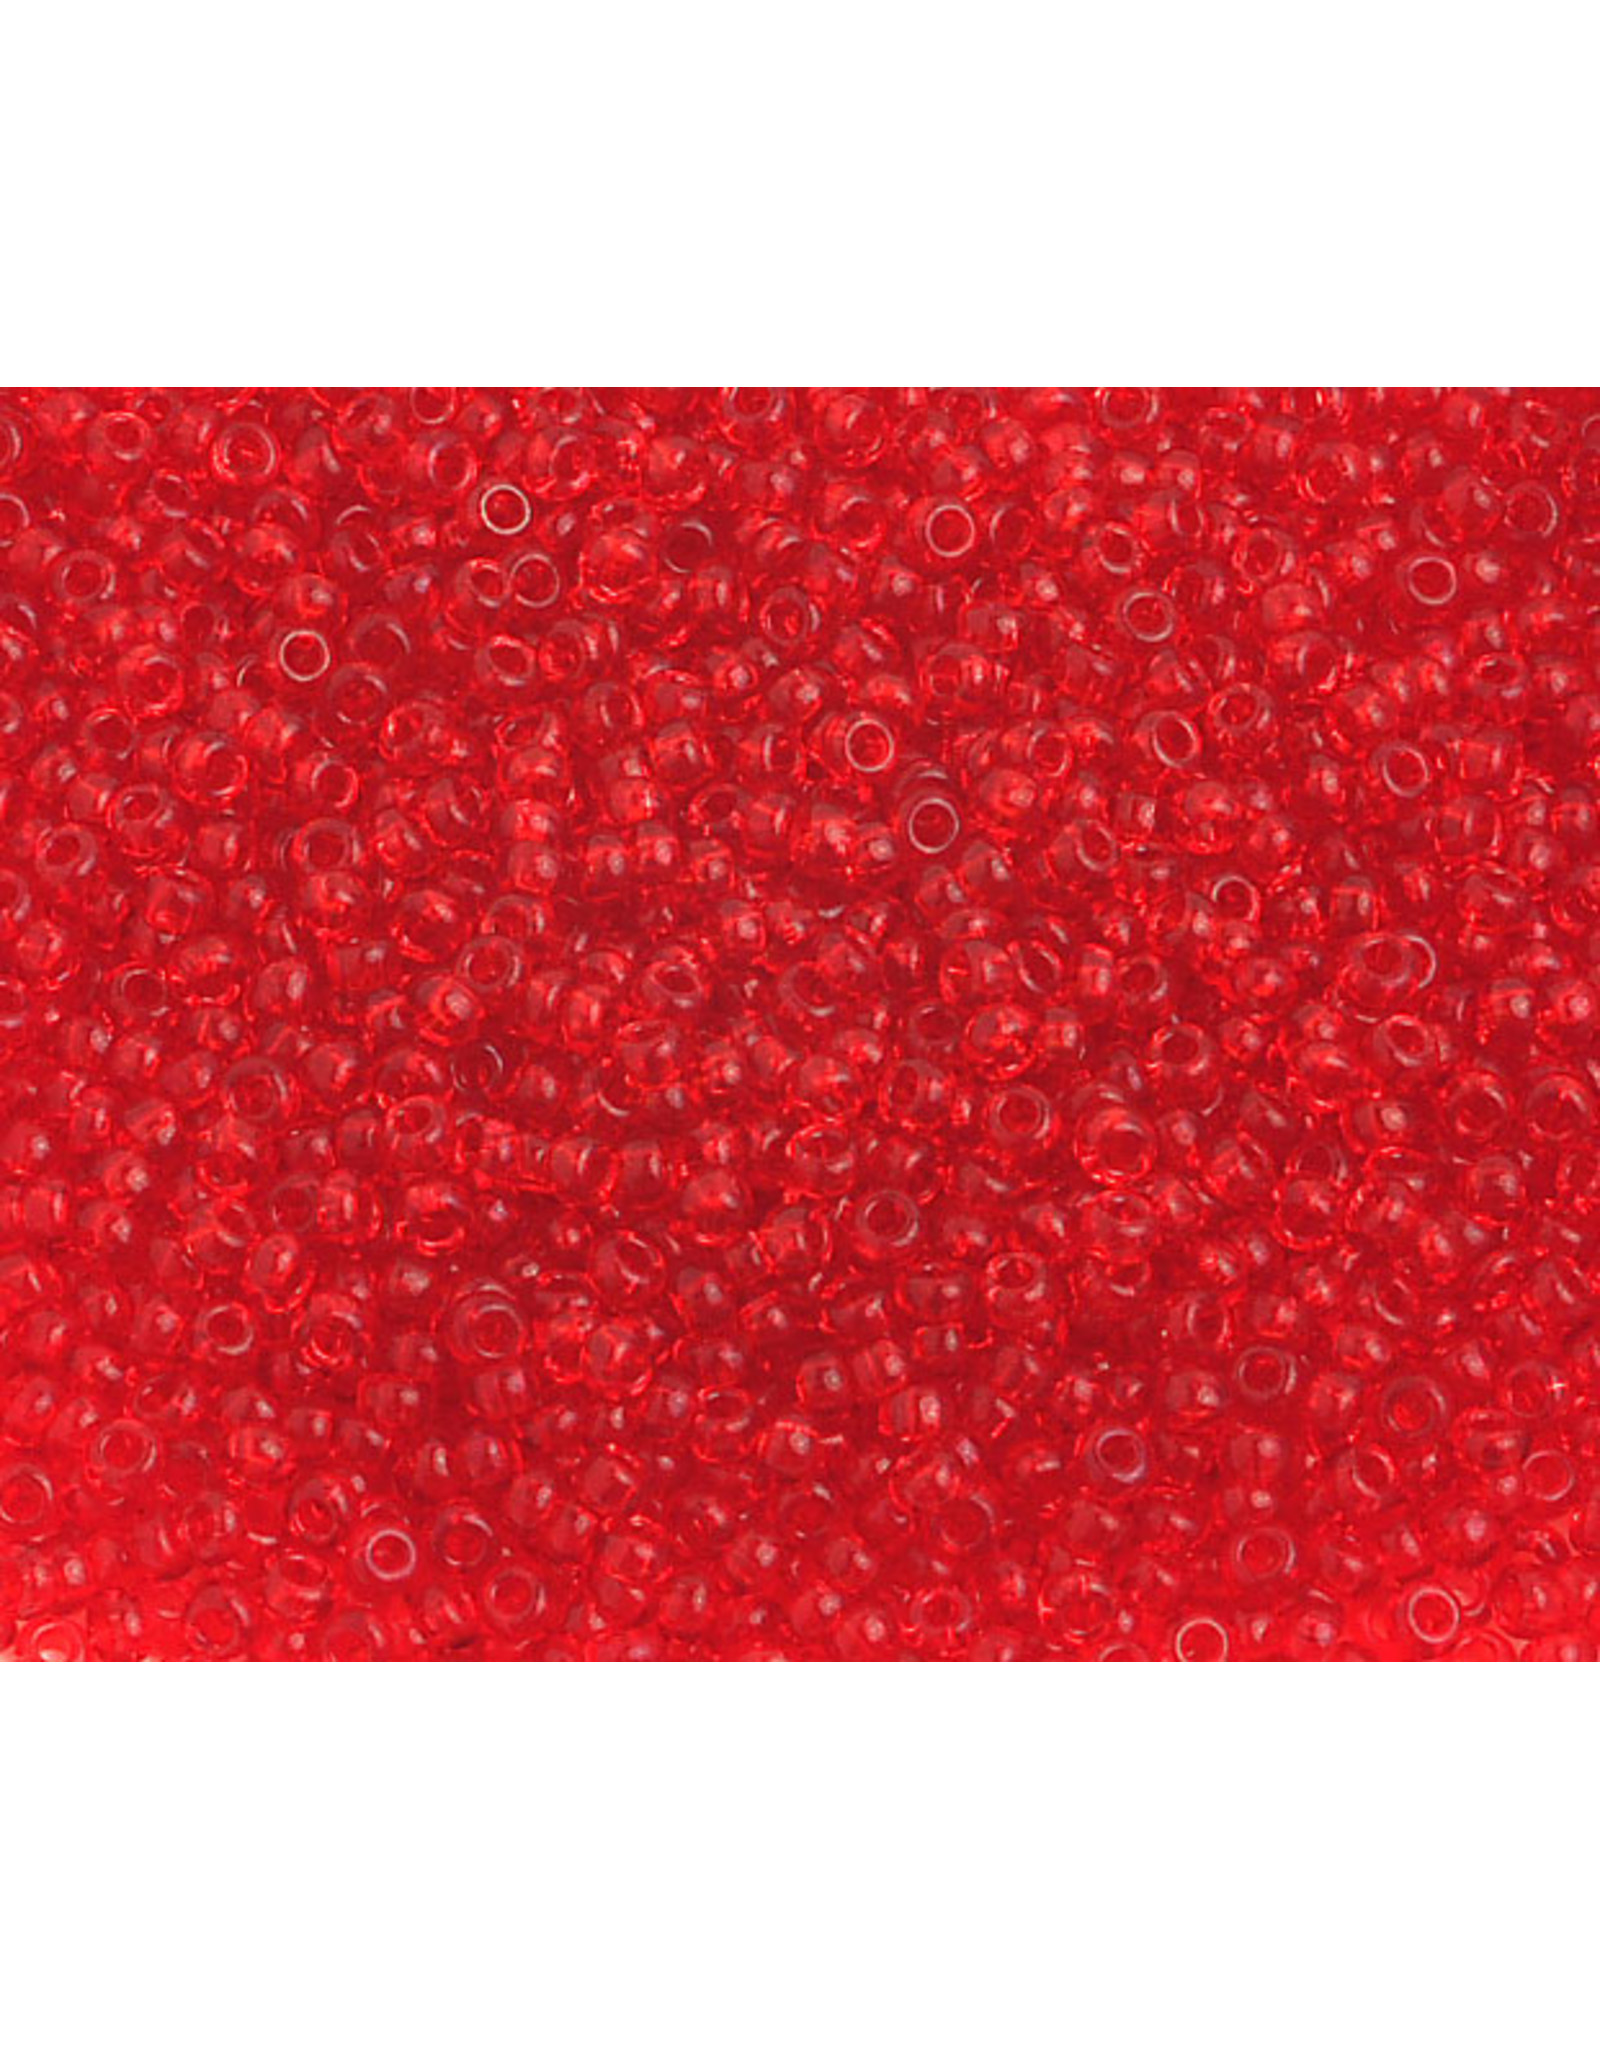 Czech 2340 10   Seed 20g  Transparent Red